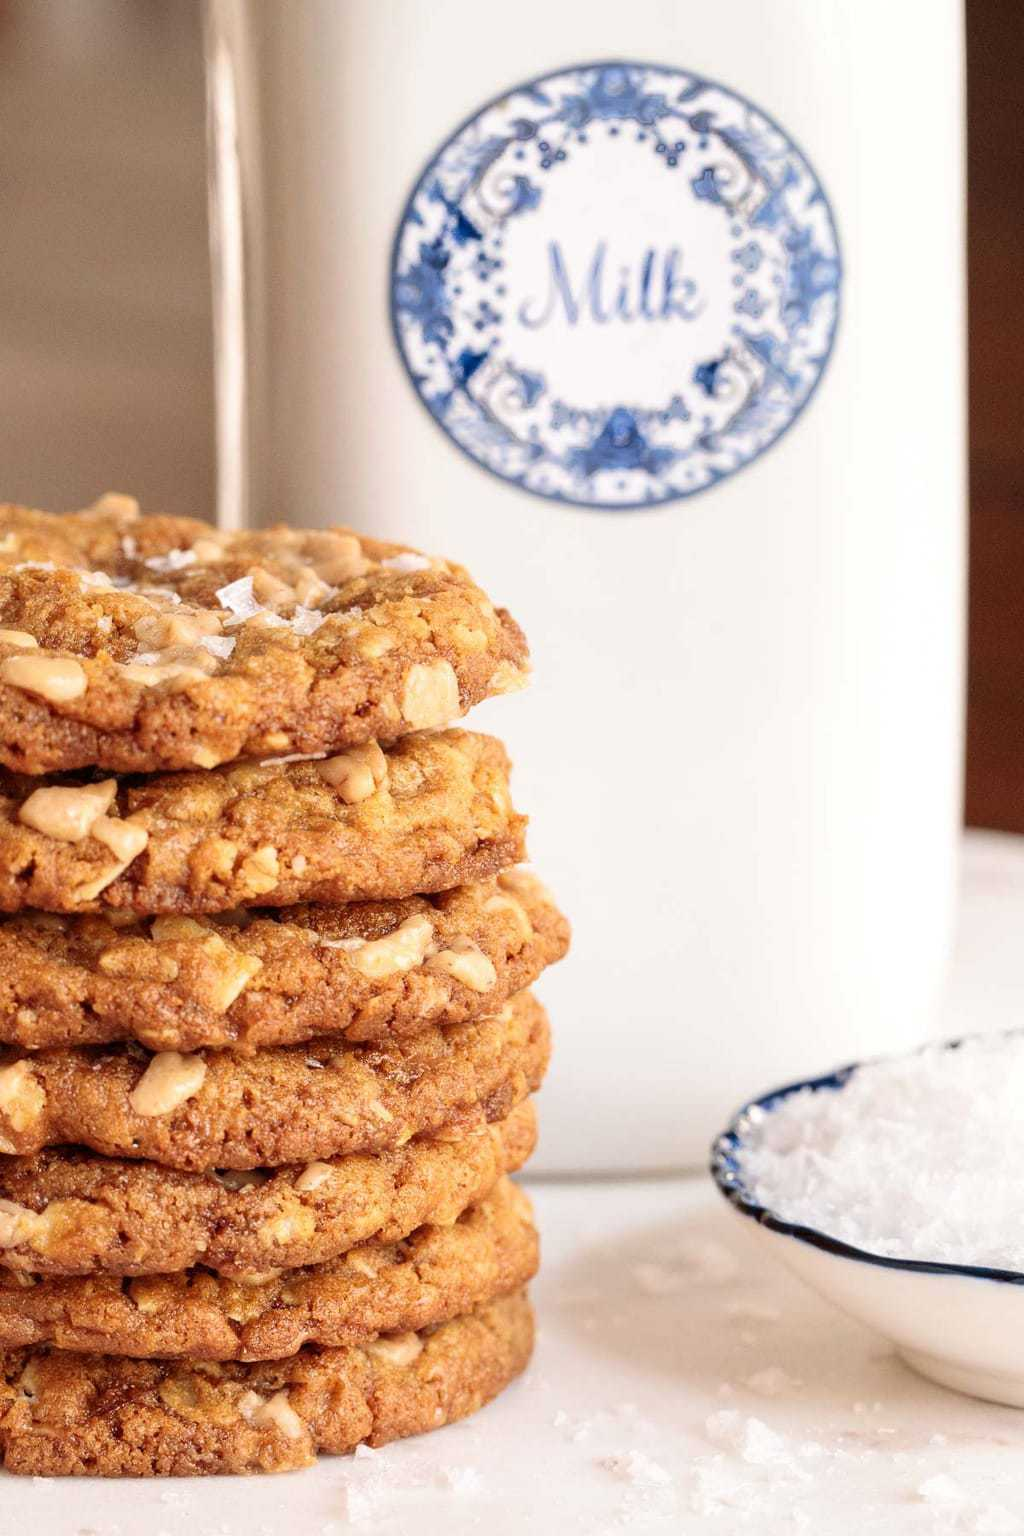 Closeup vertical photo of Oatmeal Toffee Peanut Butter Cookies on a marble surface with a glass quart of milk in the background.